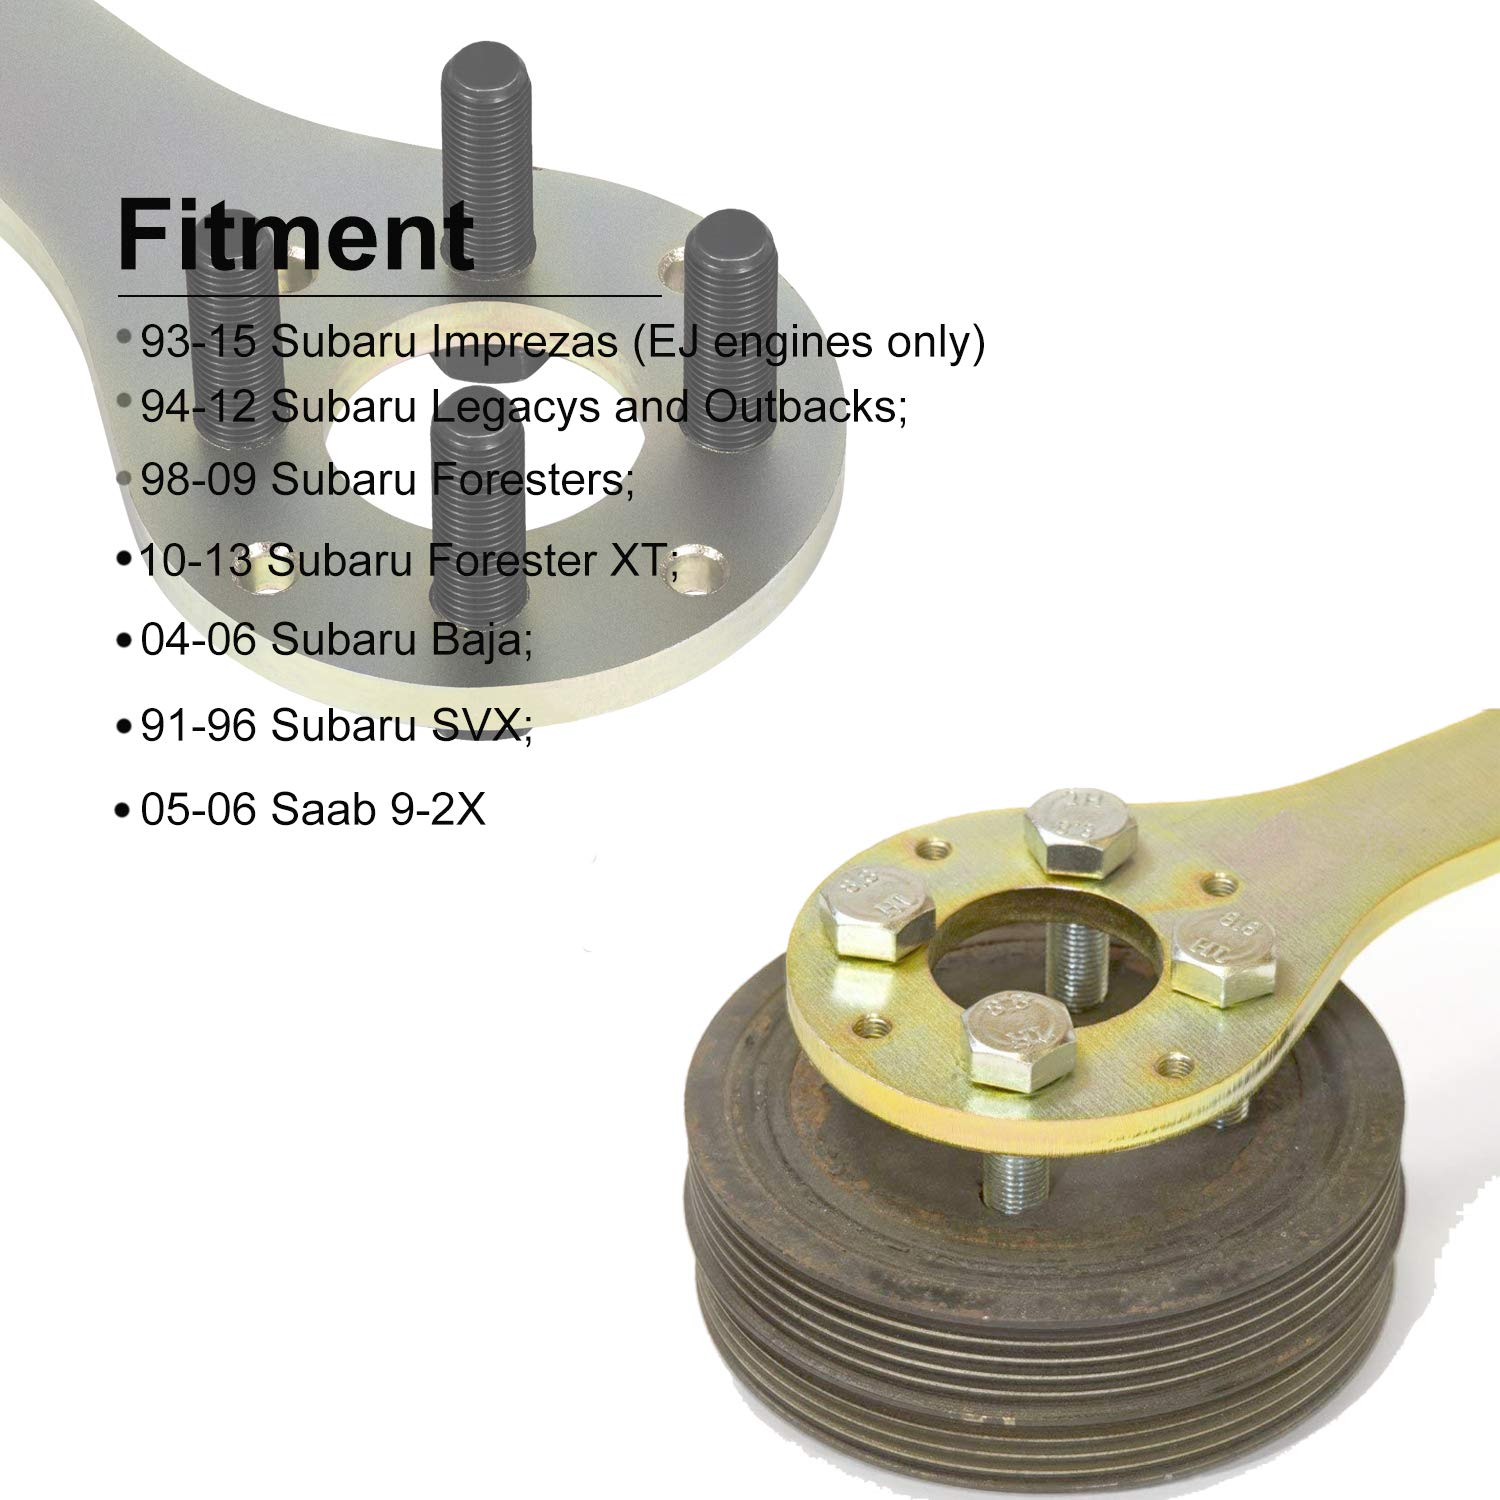 Yoursme Crank Pulley Tool Wrench Holder Kit for Subaru Imprezas Foresters XT Legacy Outback Baja SVX Saab 9-2X by Yoursme (Image #4)